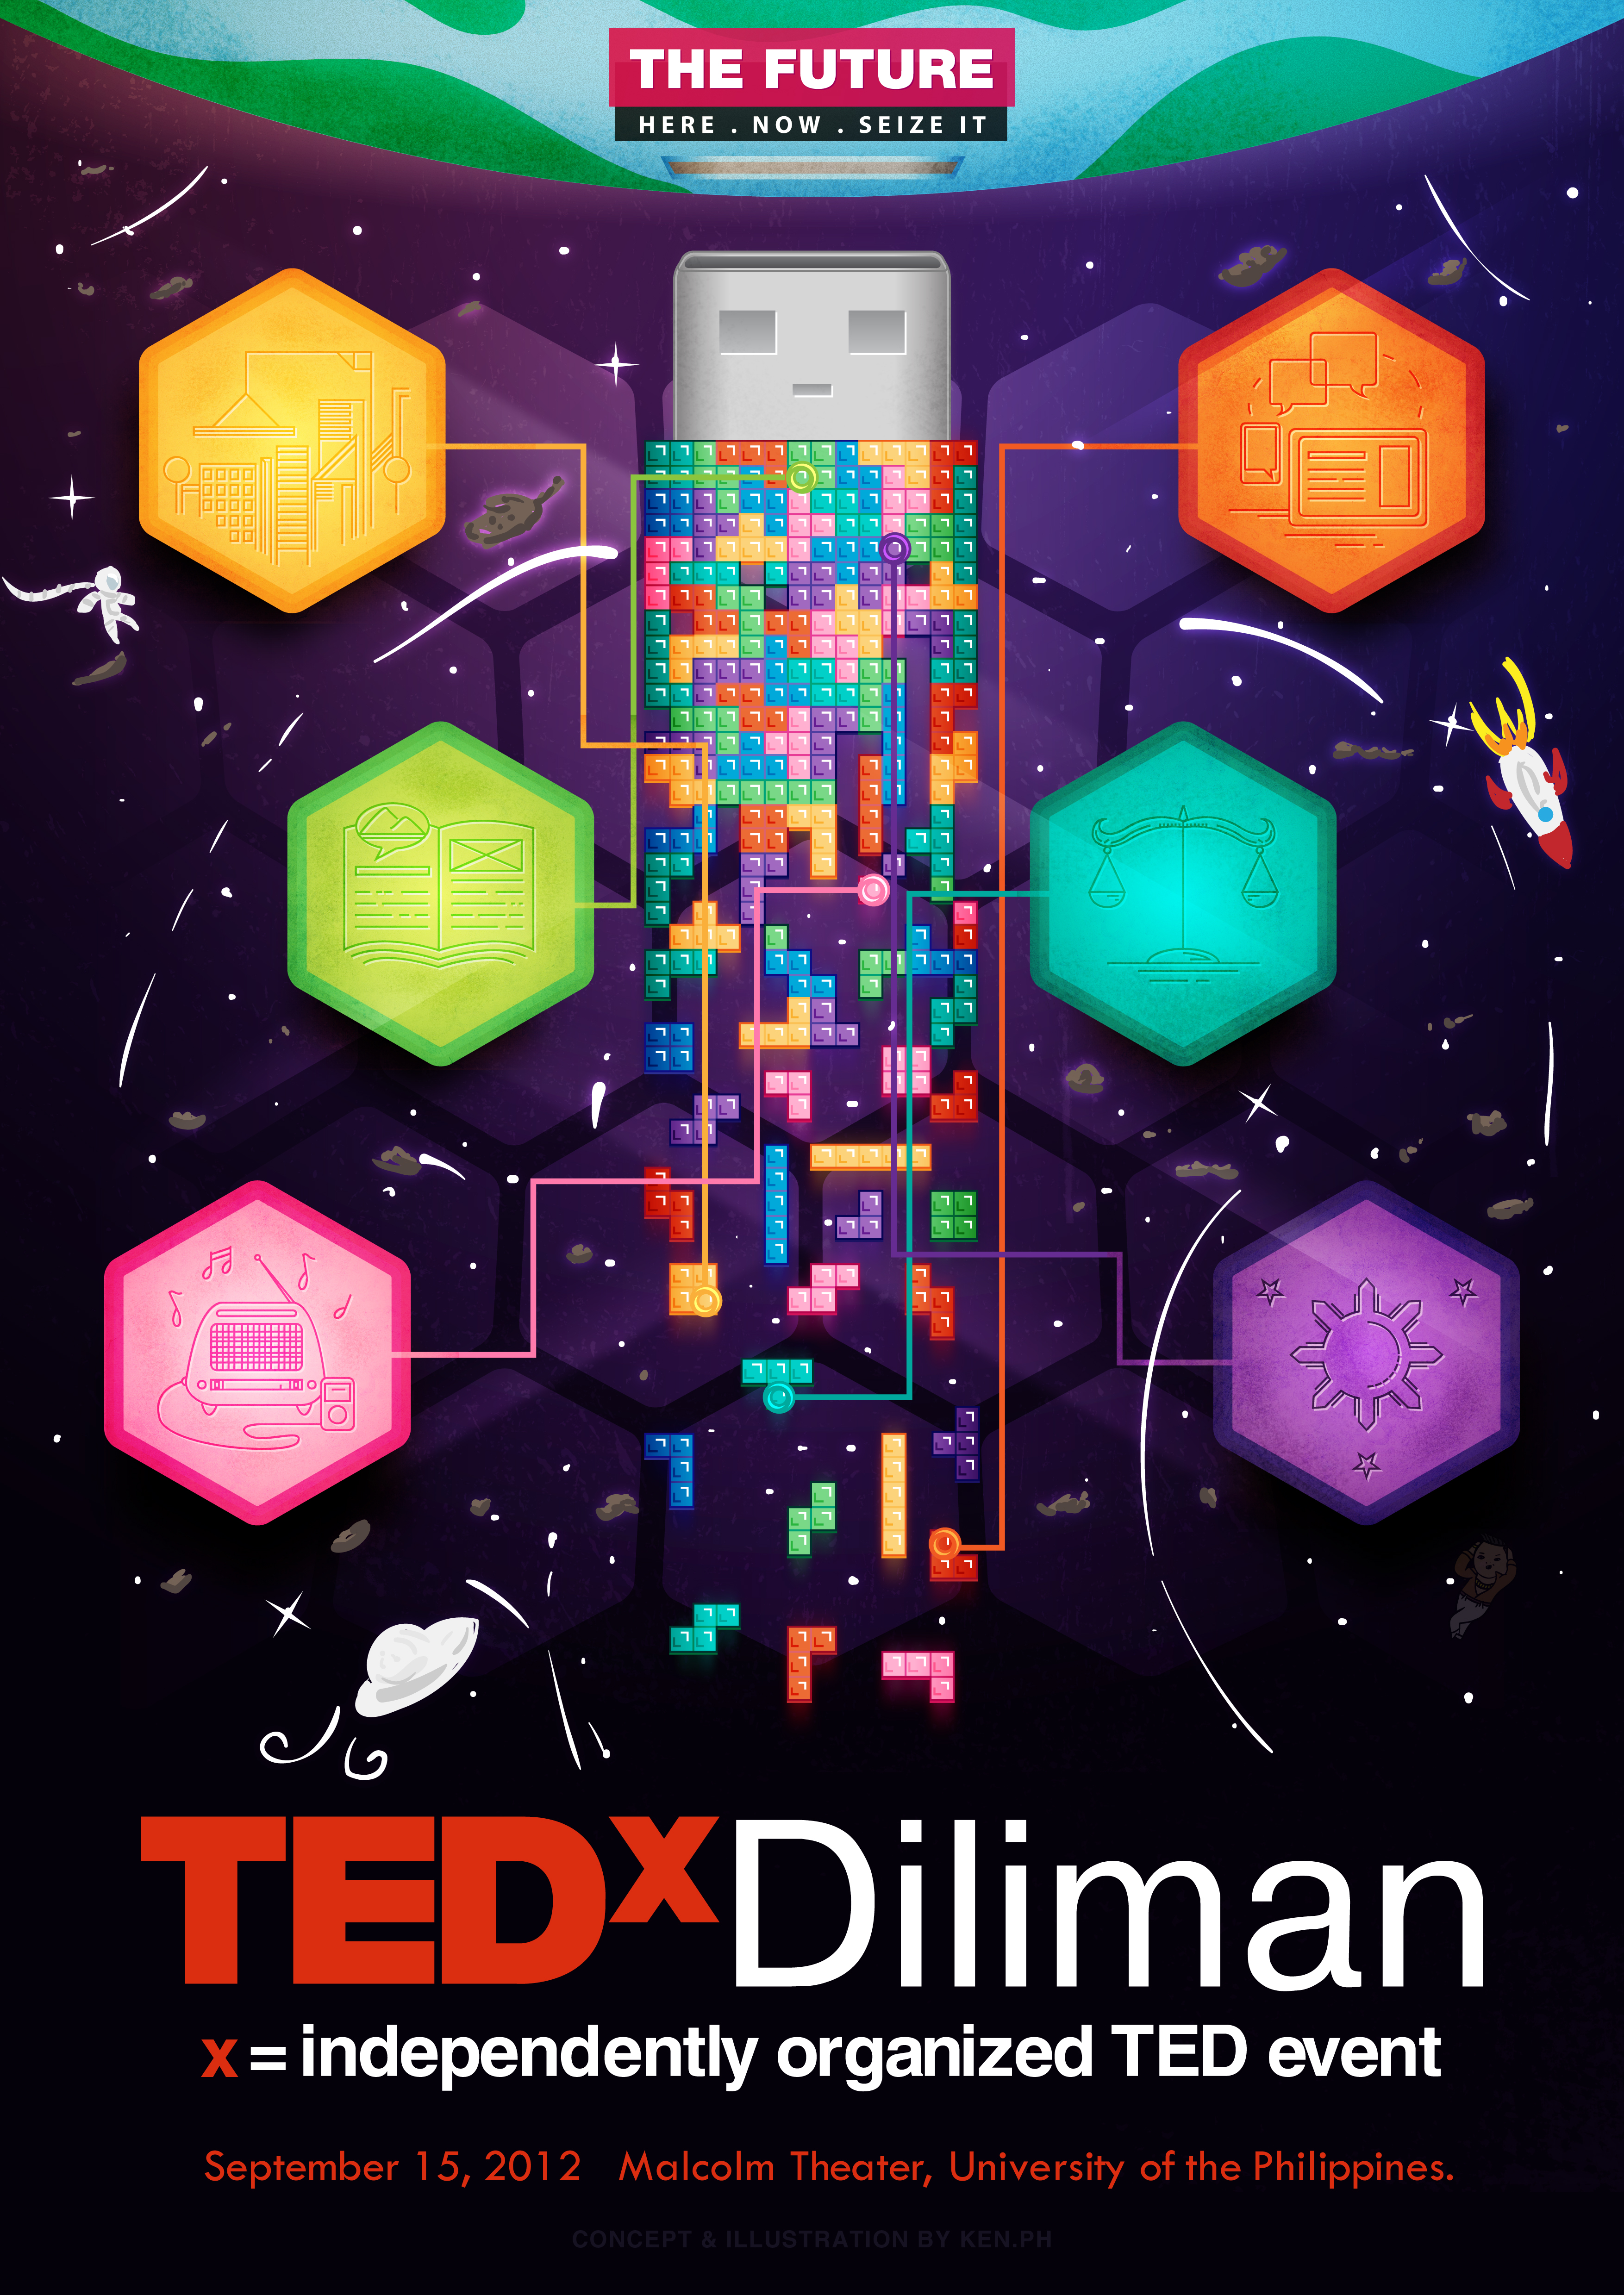 TEDx Diliman - THE FUTURE poster